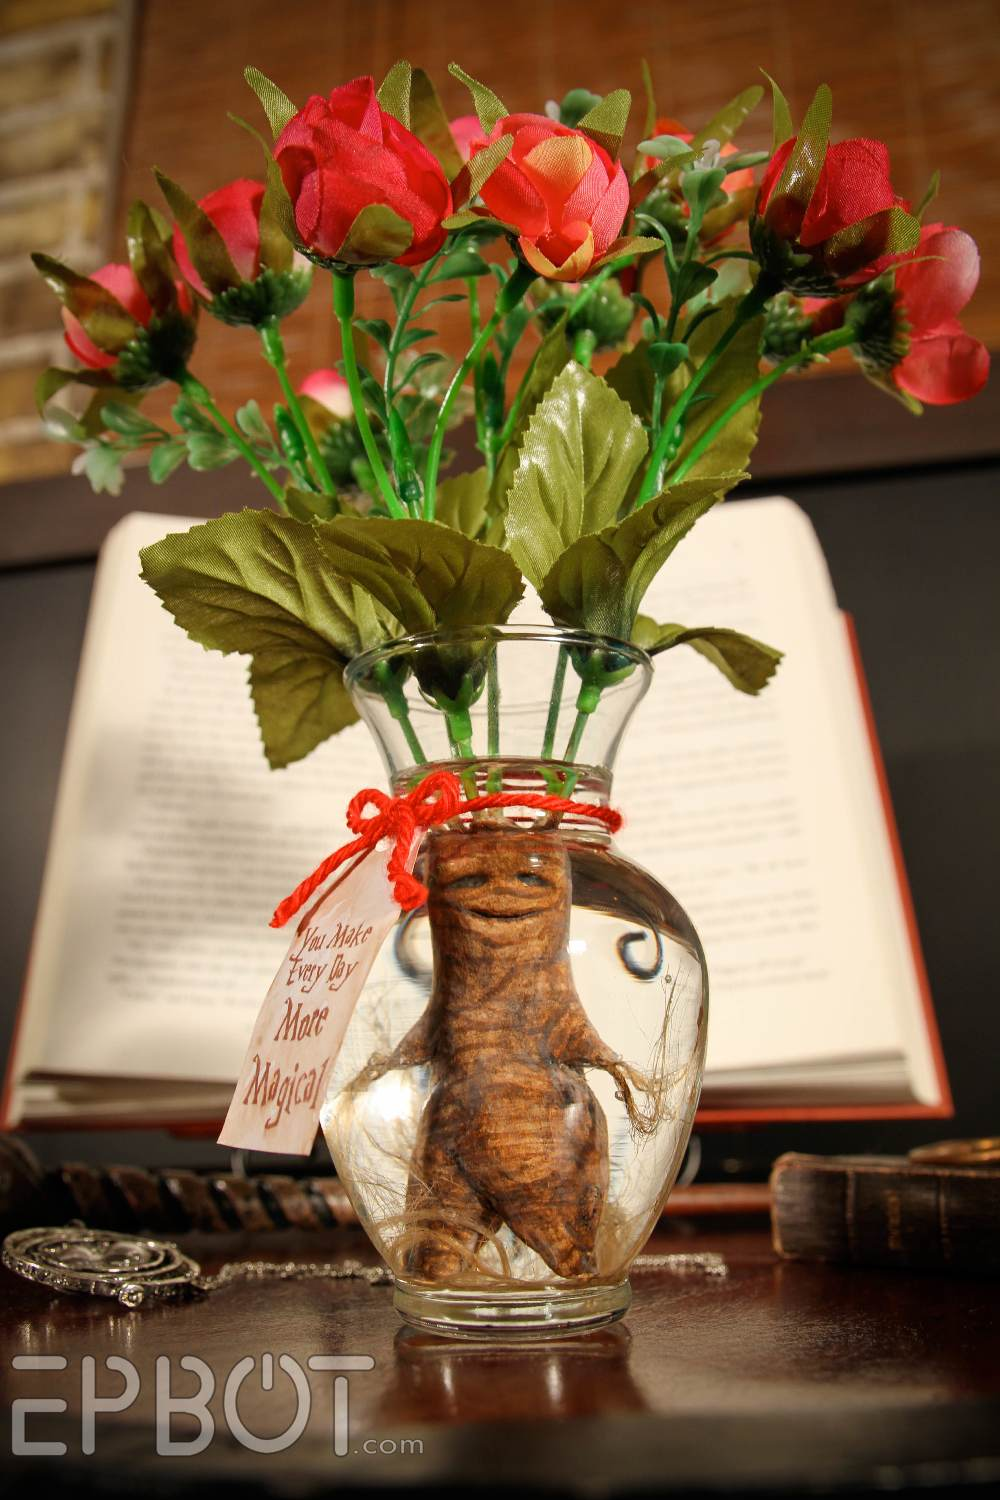 Epbot diy a harry potter inspired mandrake root valentine bouquet diy a harry potter inspired mandrake root valentine bouquet solutioingenieria Image collections